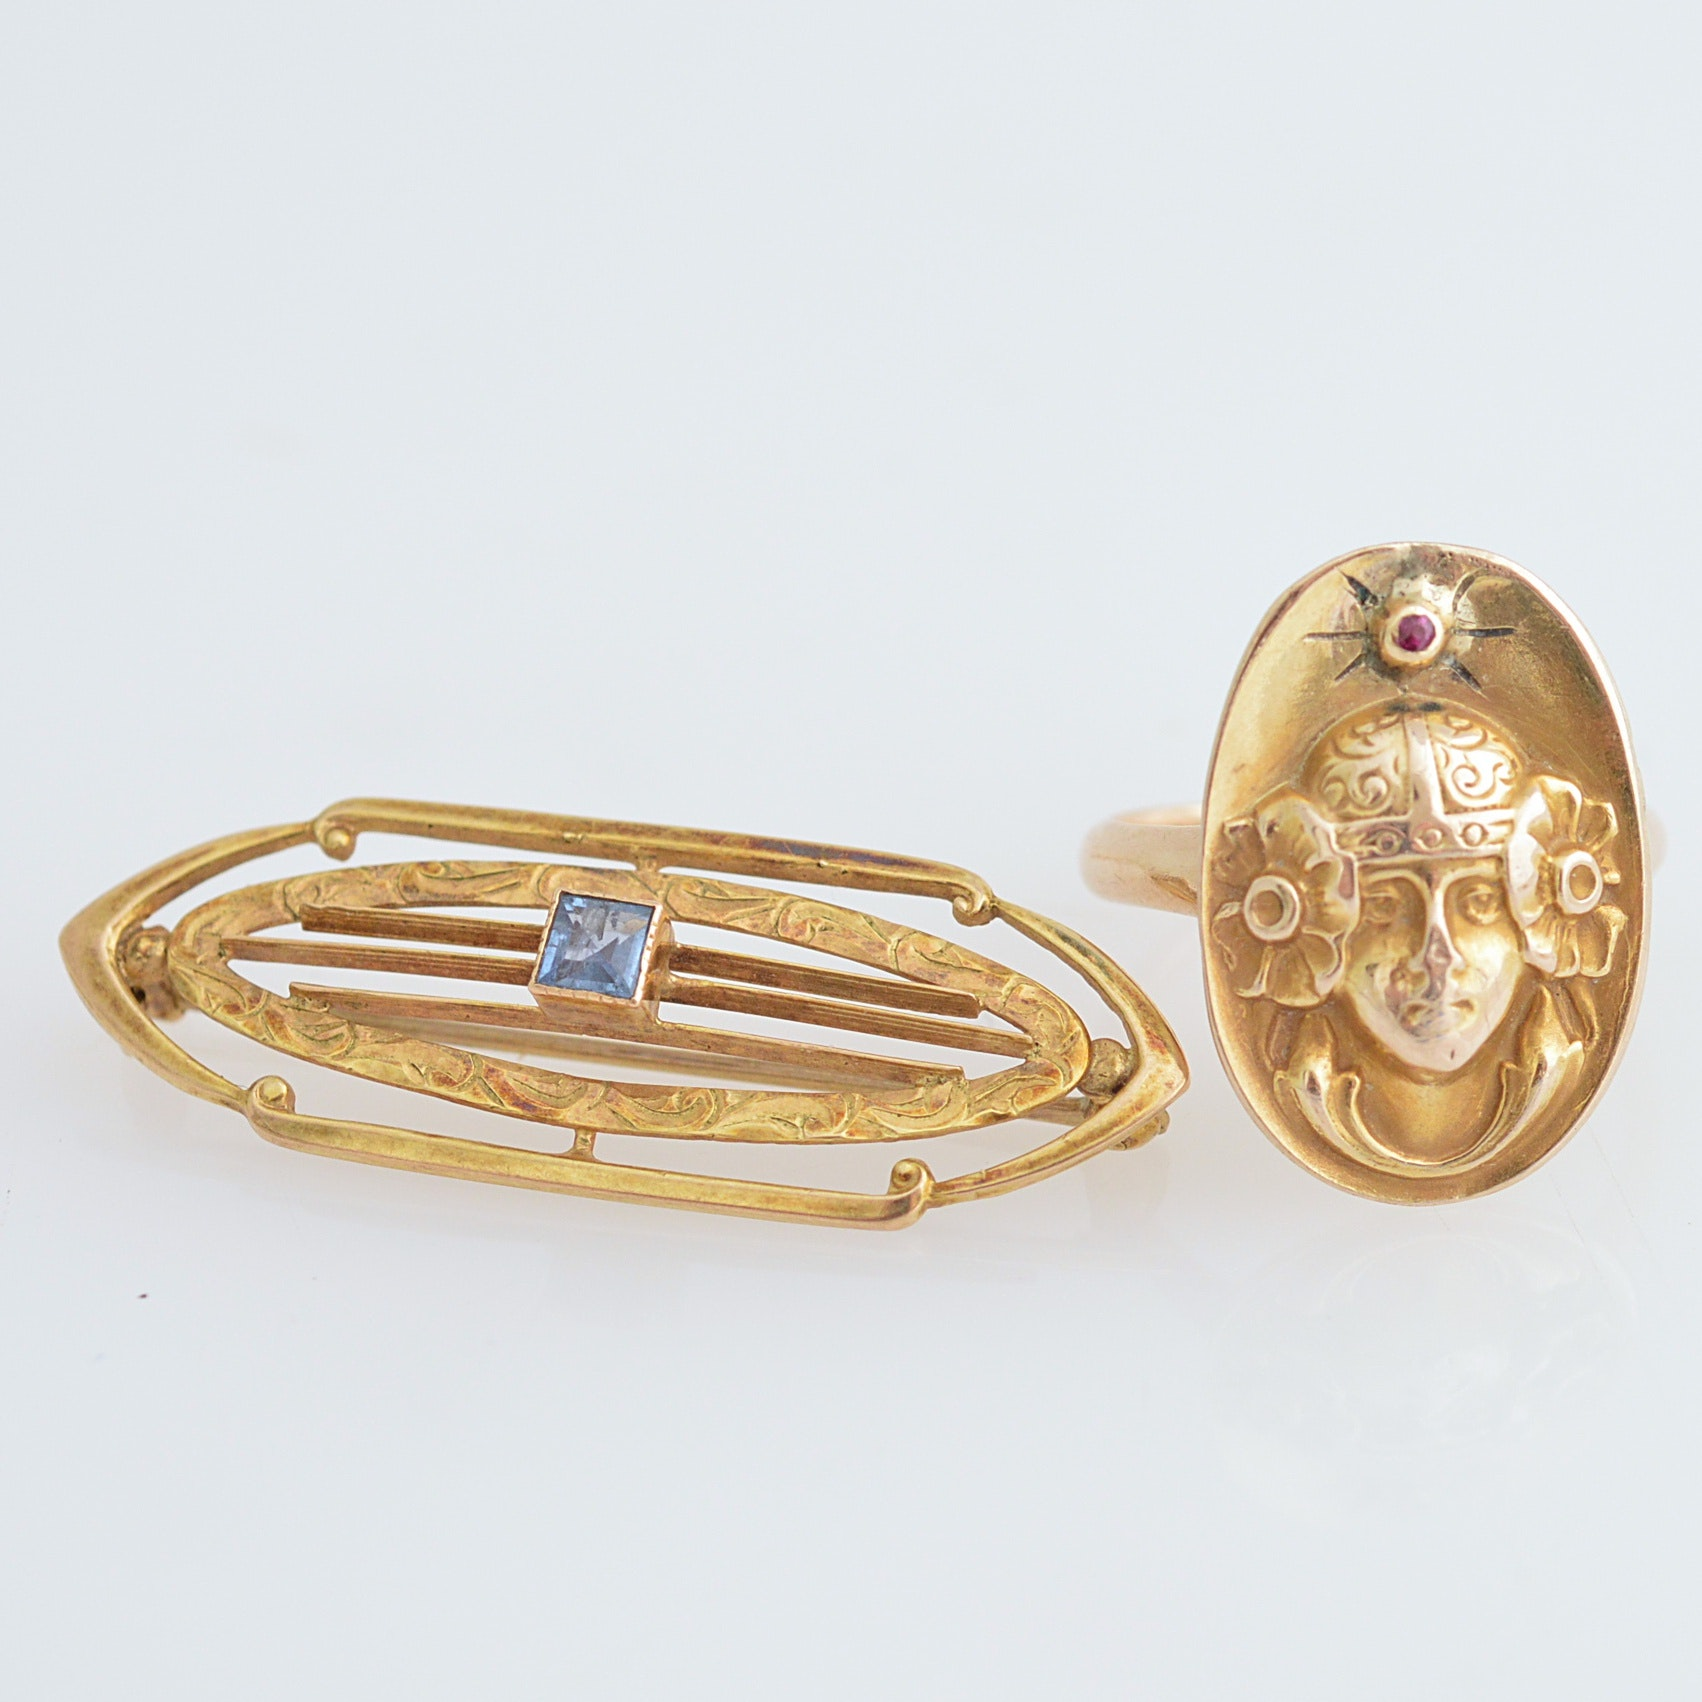 Art Nouveau 10K Gold and Ruby Ring, Arts and Crafts 10K Gold and Sapphire Brooch